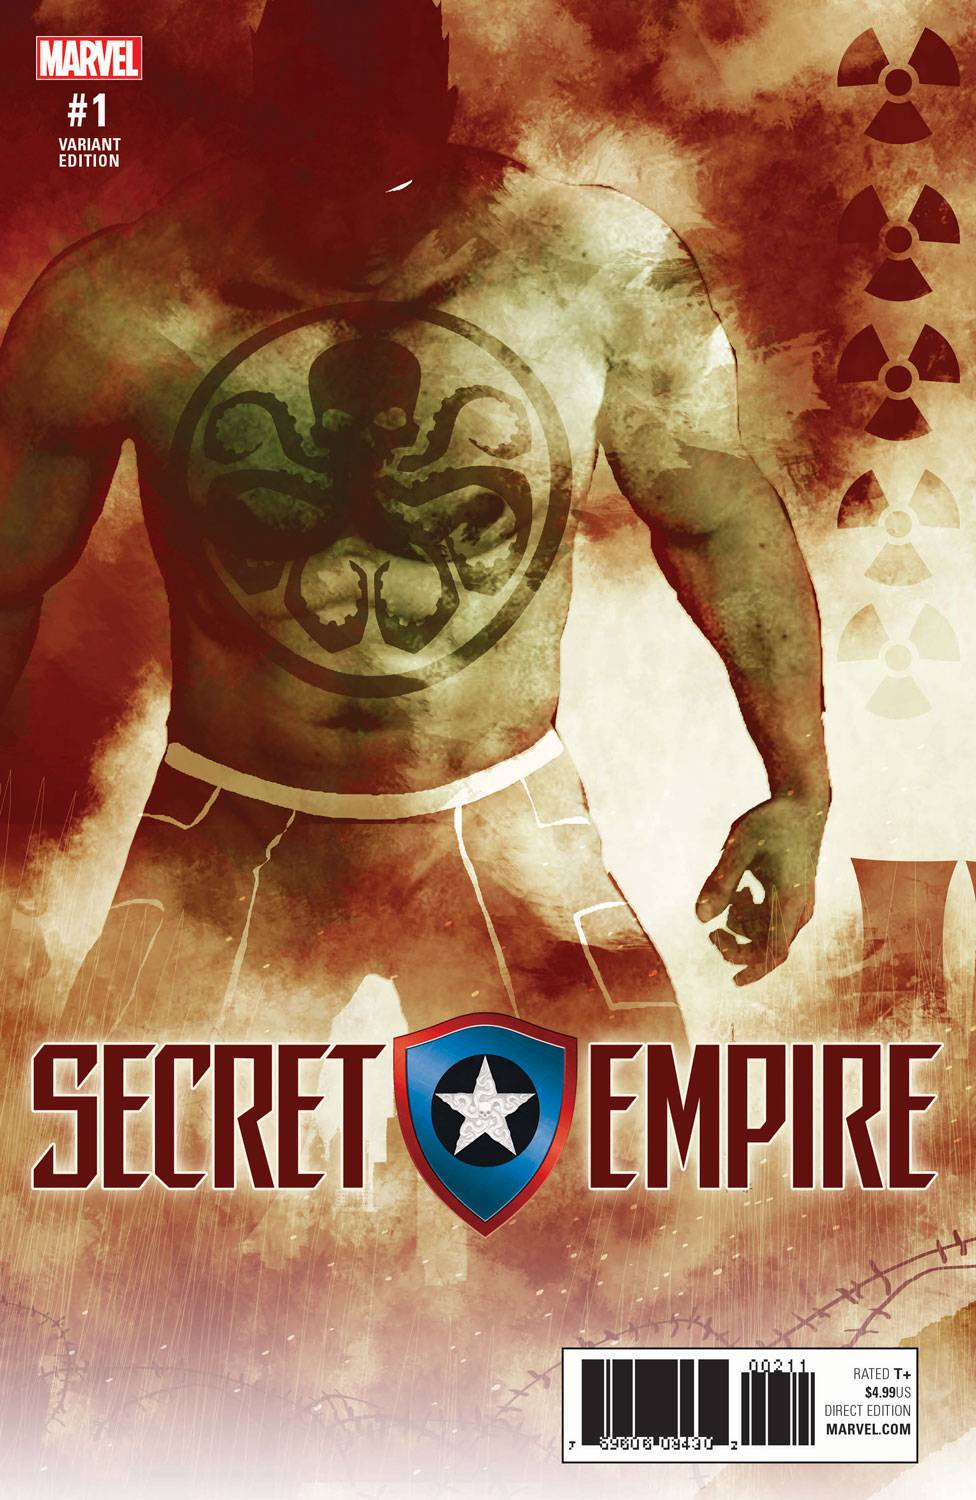 SECRET EMPIRE 1 of 9 SORRENTINO HYDRA HEROES VAR.jpg